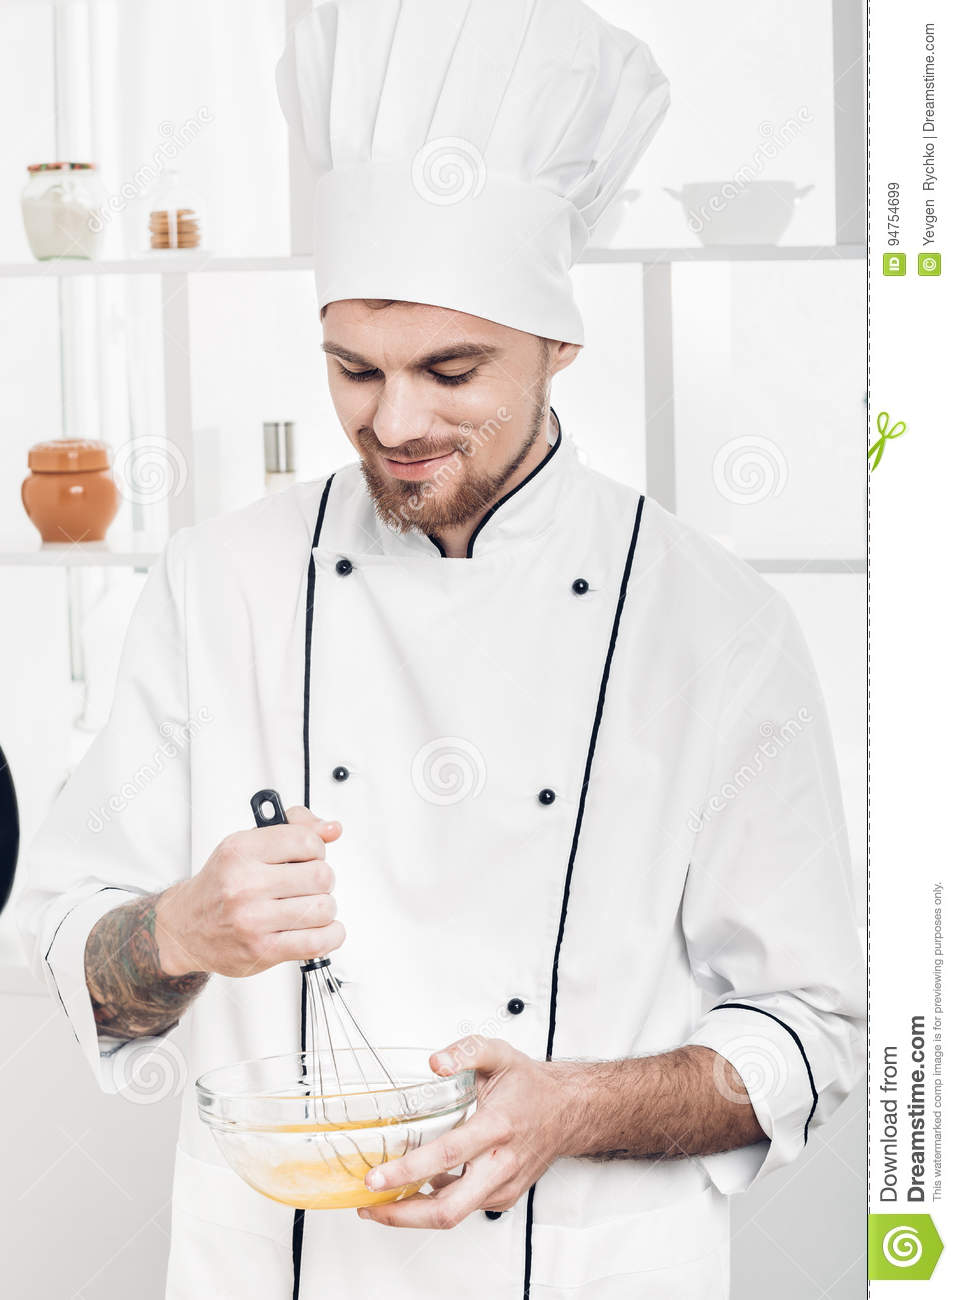 Chef In Uniforms Whipping Eggs And Milk In Bowl In Kitchen